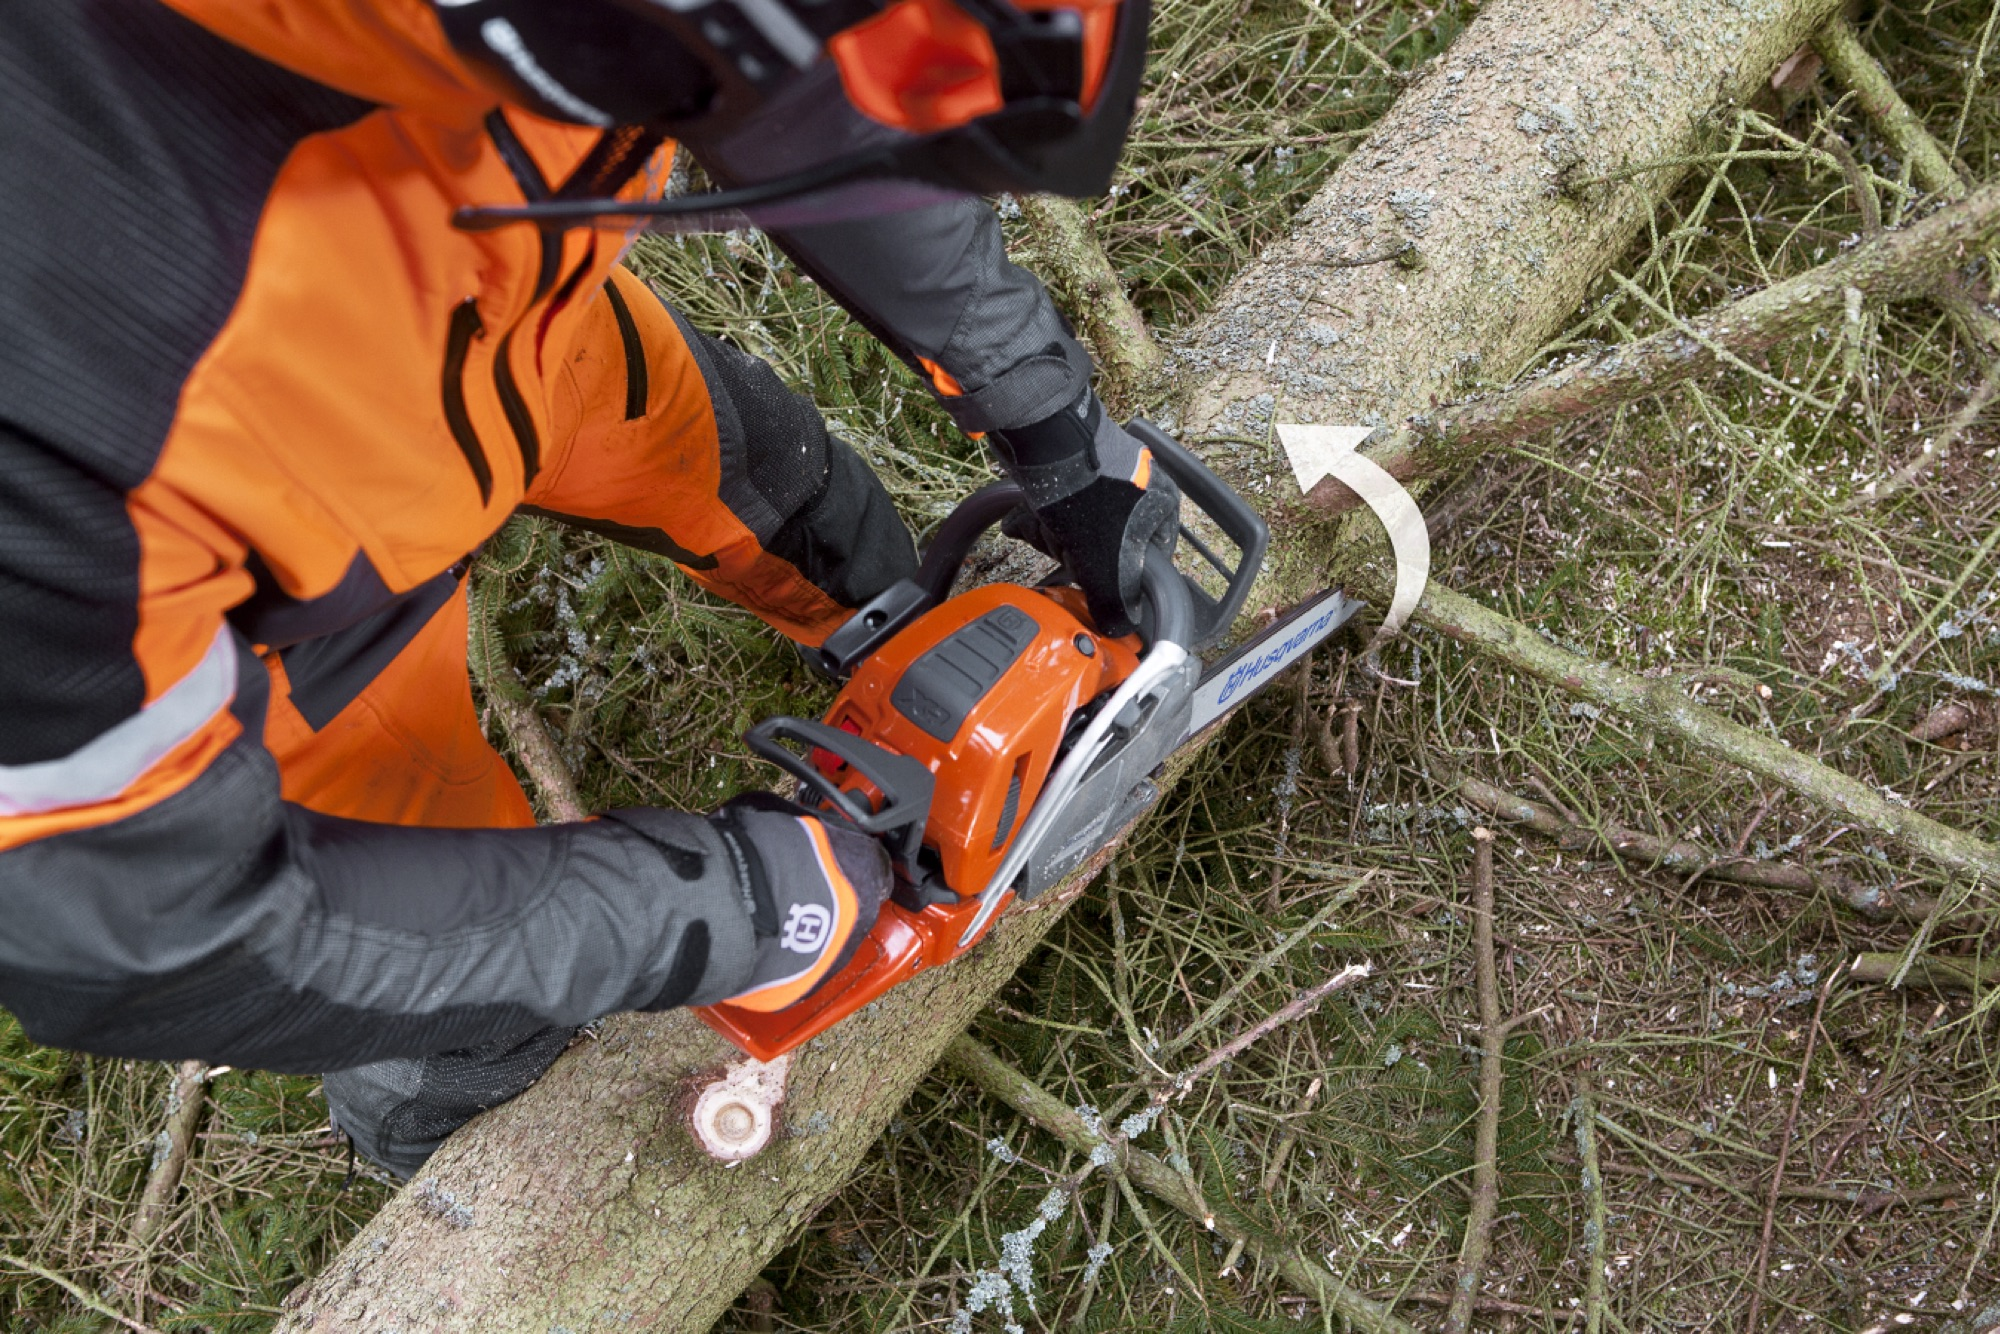 Seen from above: forestry worker limbing a branch from below at the right side of the tree